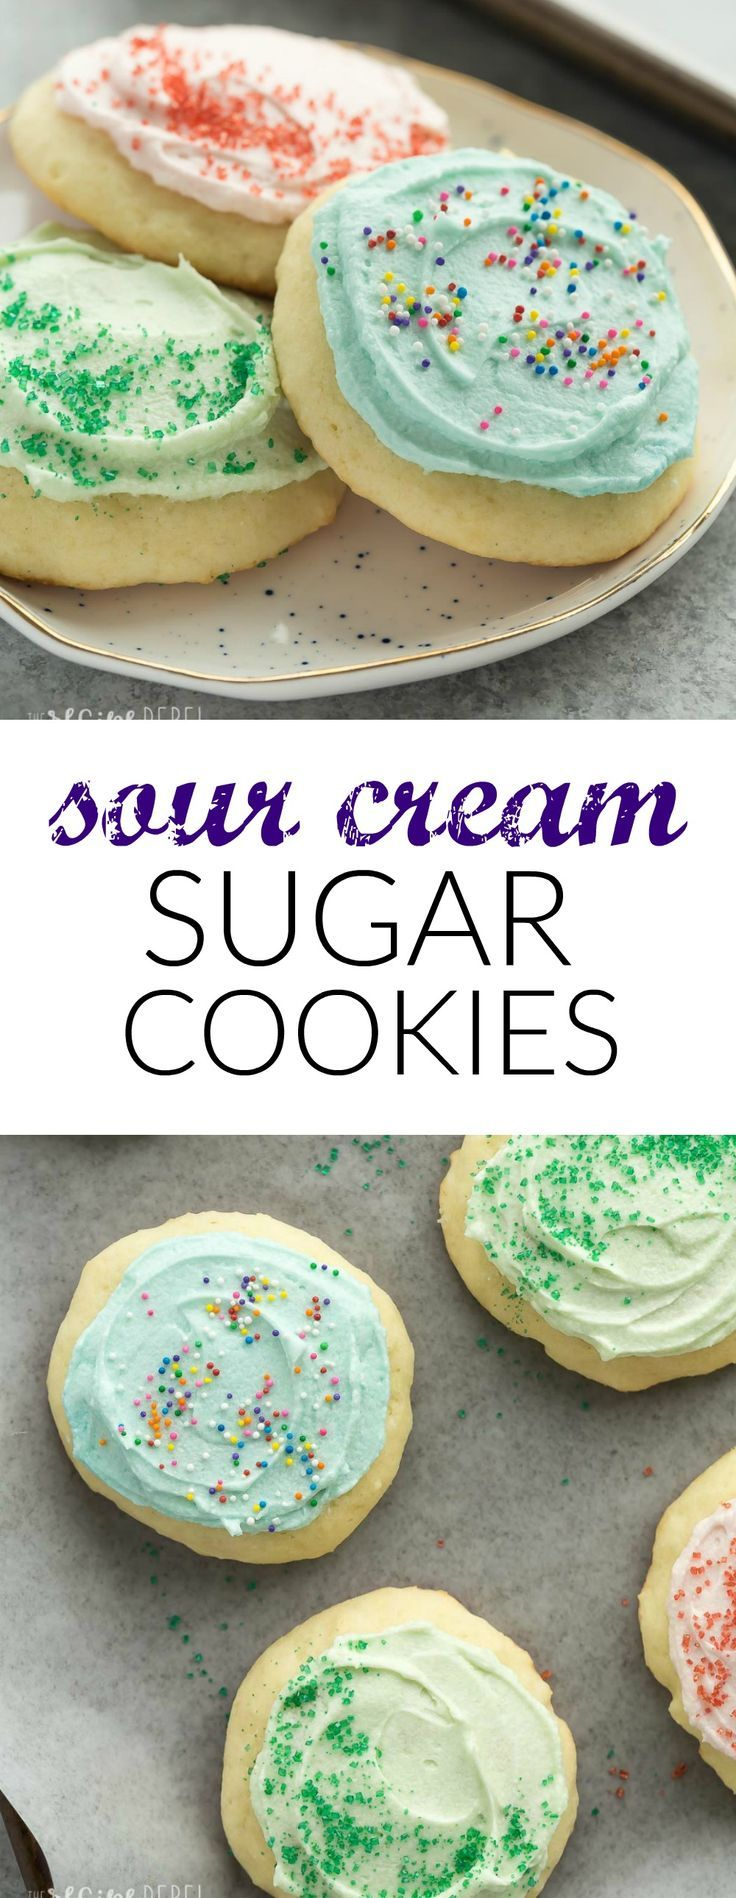 These Sour Cream Sugar Cookies are soft and fluffy with just the right amount of sweetness — they're perfect with or without frosting and make a great freezer-friendly holiday cookie!(Bake Cheesecake Without Sour Cream)